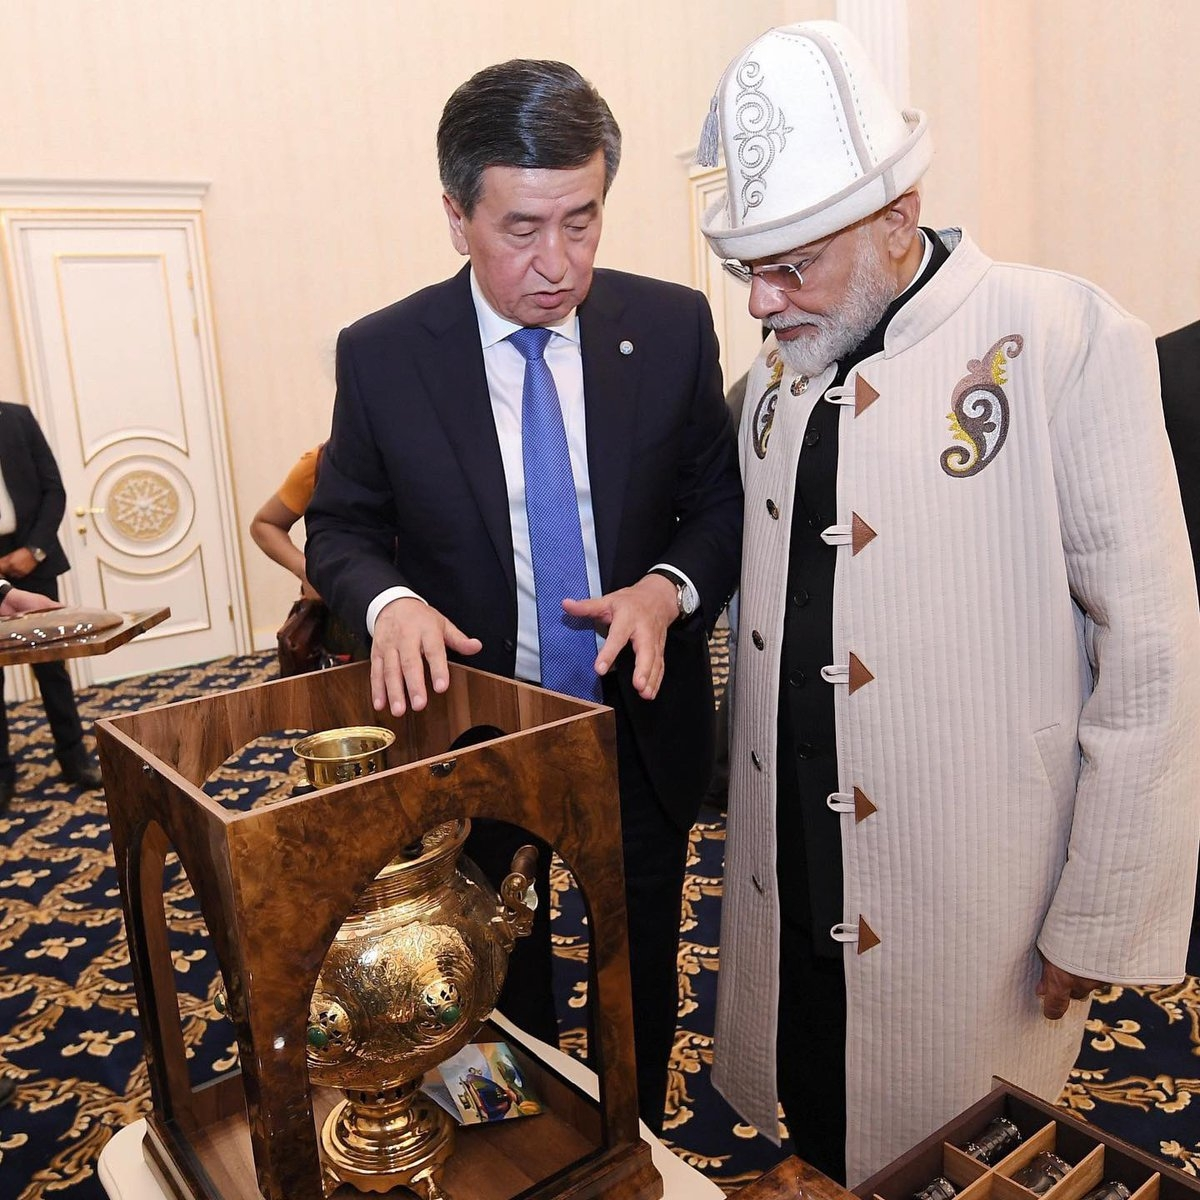 Bishkek: Kyrgyzstan President Sooronbay Jeenbekov presents a Kalpak, the traditional Kyrgyz hat, a Chapan a traditional coat from Kyrgyzstan and a Samovar a container to heat or boil water to Prime Minister Narendra Modi in Bishkek, on June 15, 2019. (Photo: IANS/@PMOIndia) by .